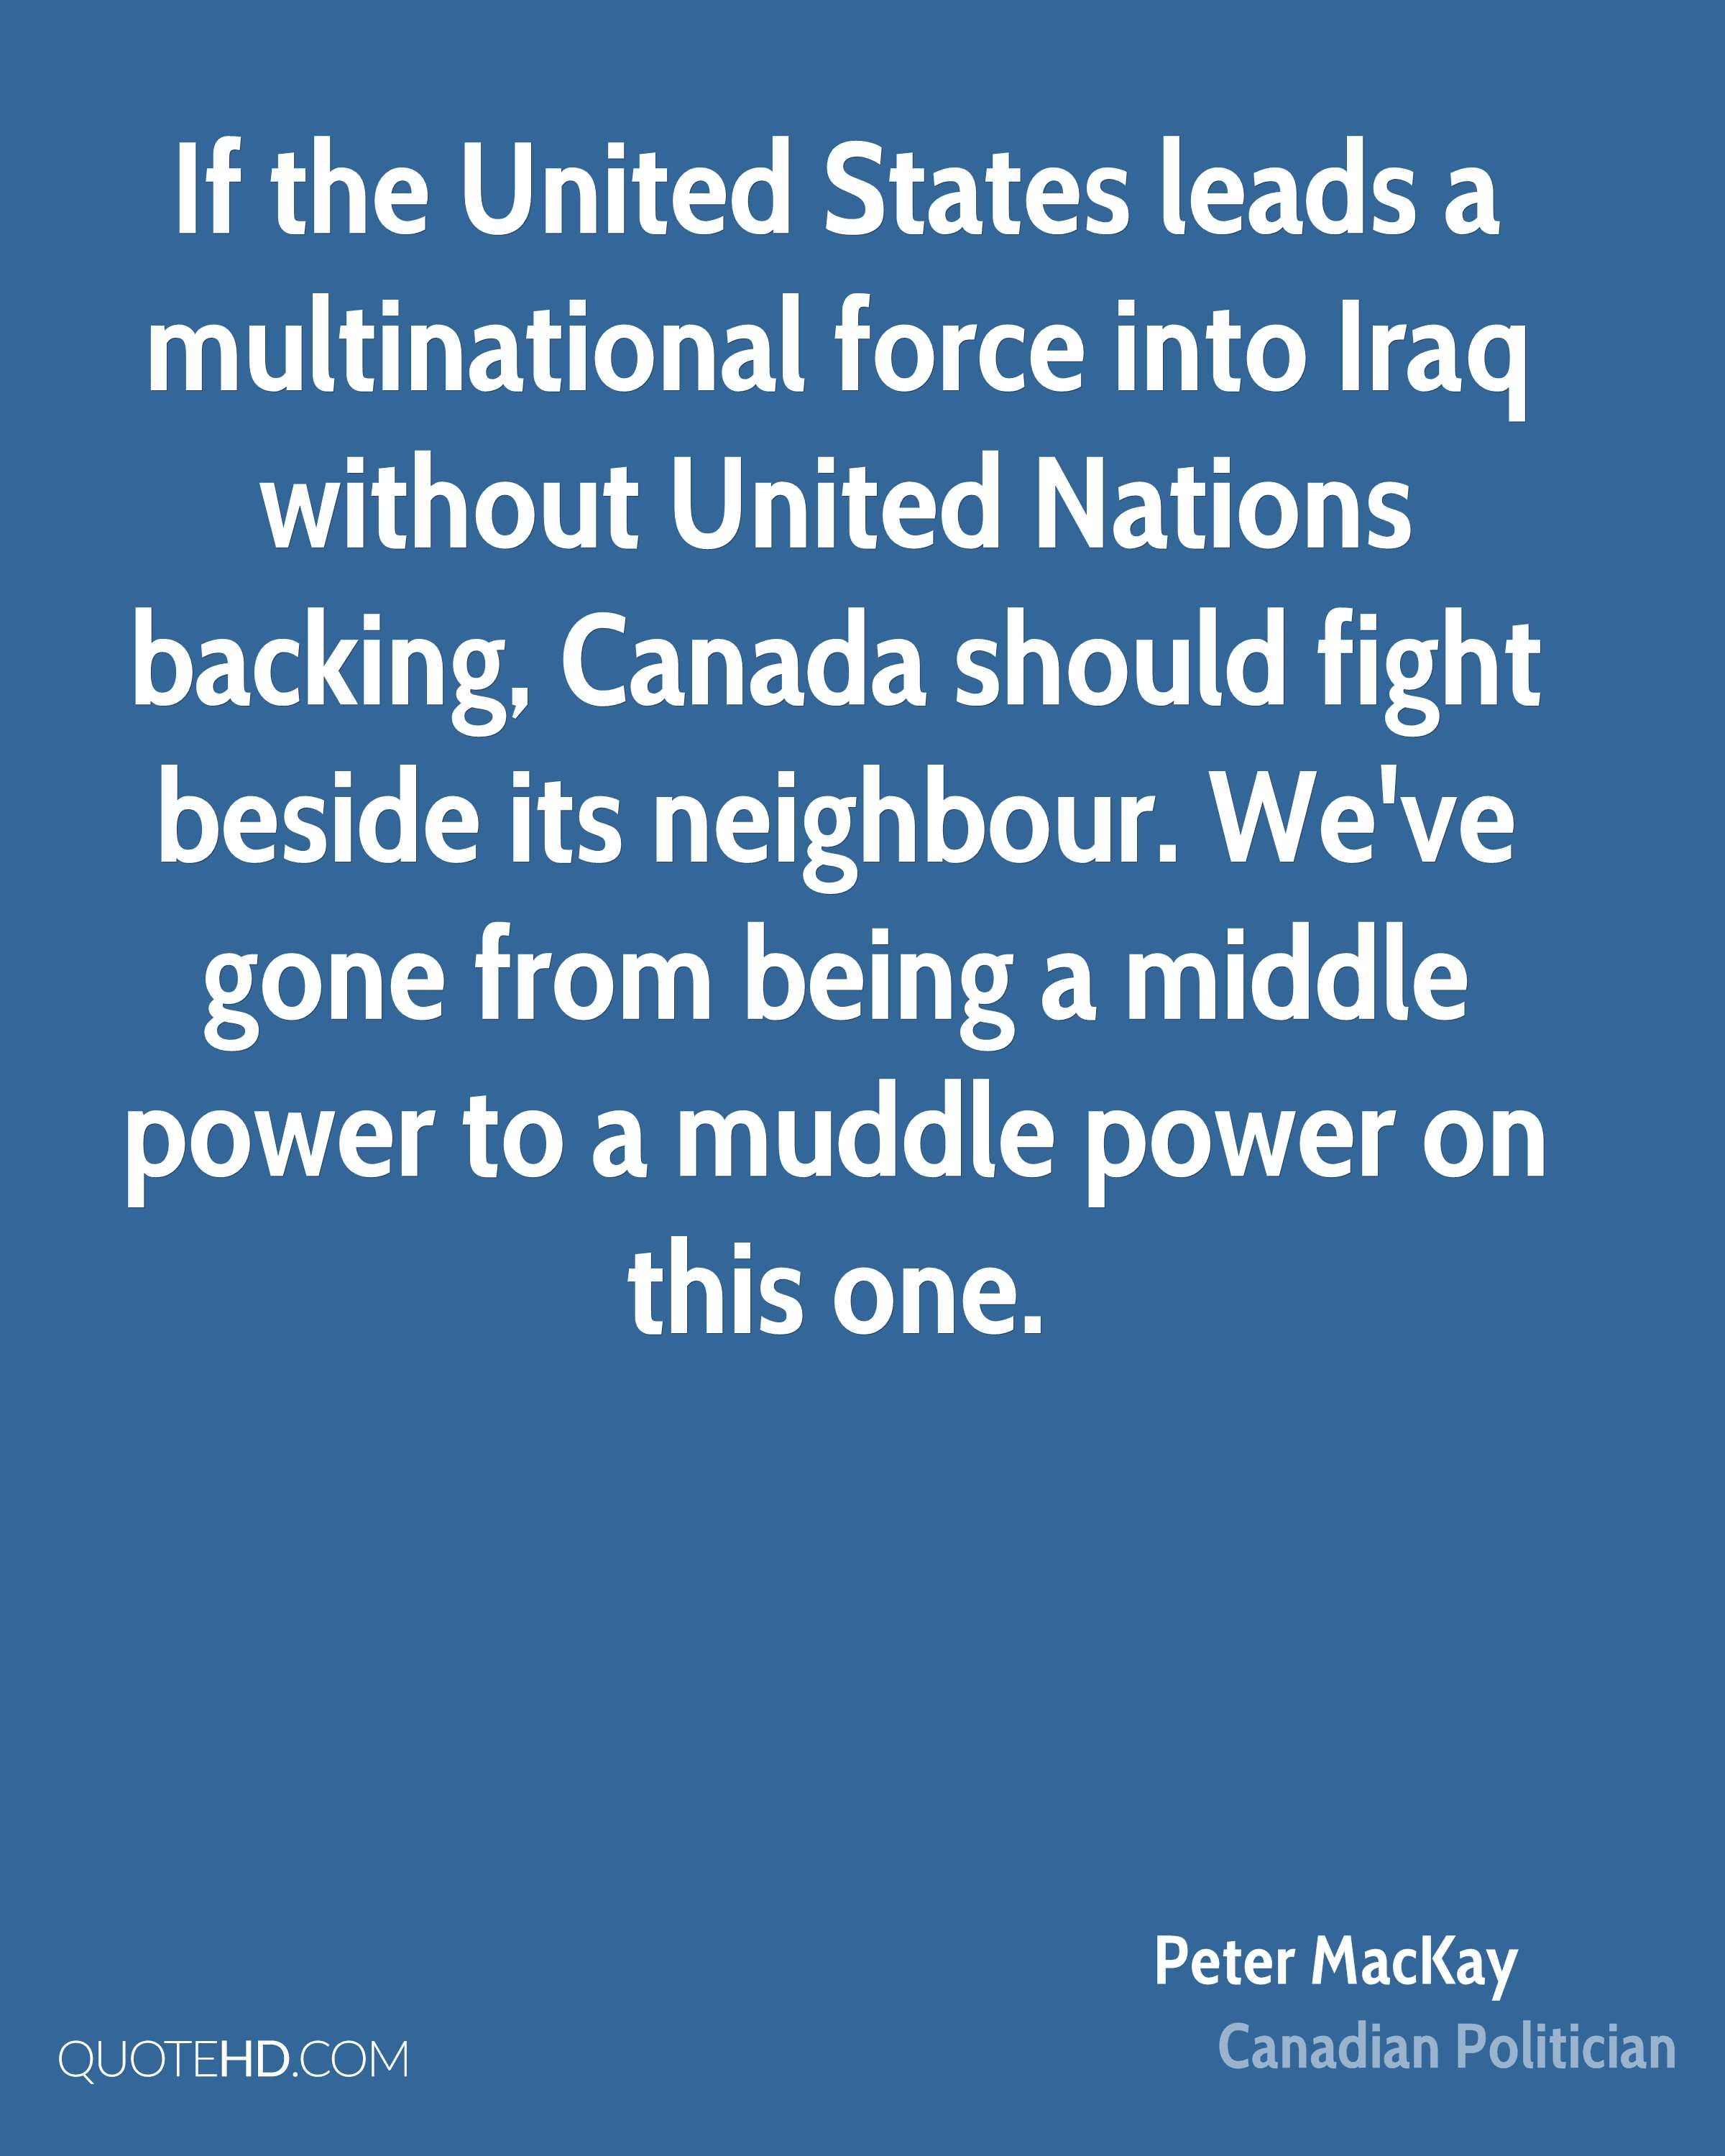 If the United States leads a multinational force into Iraq without United Nations backing, Canada should fight beside its neighbour. We've gone from being a middle power to a muddle power on this one.